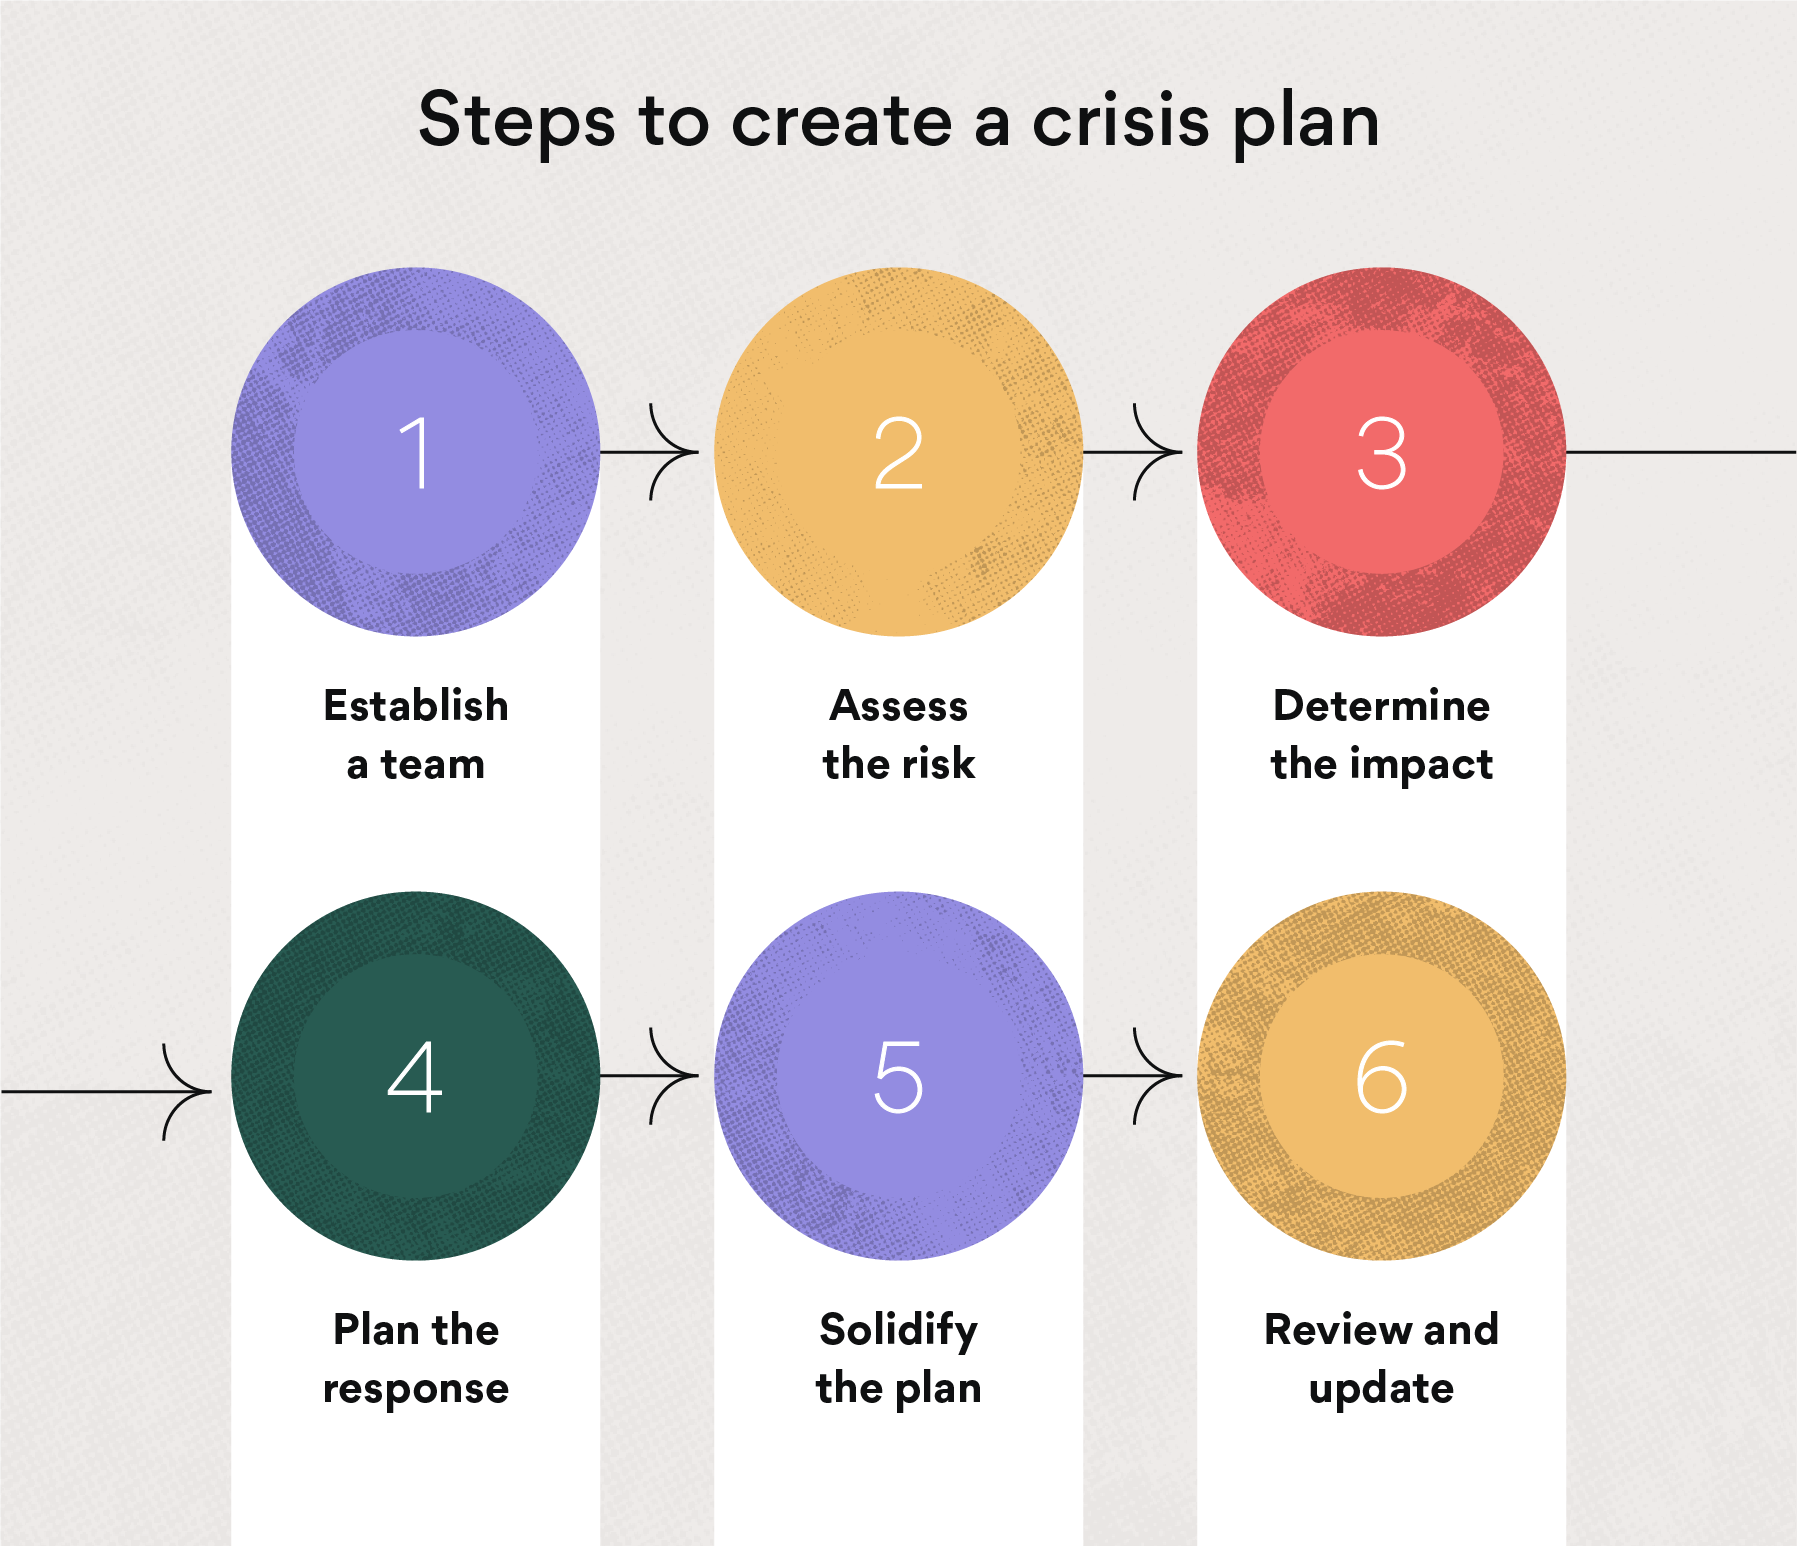 6 steps to create a crisis management plan